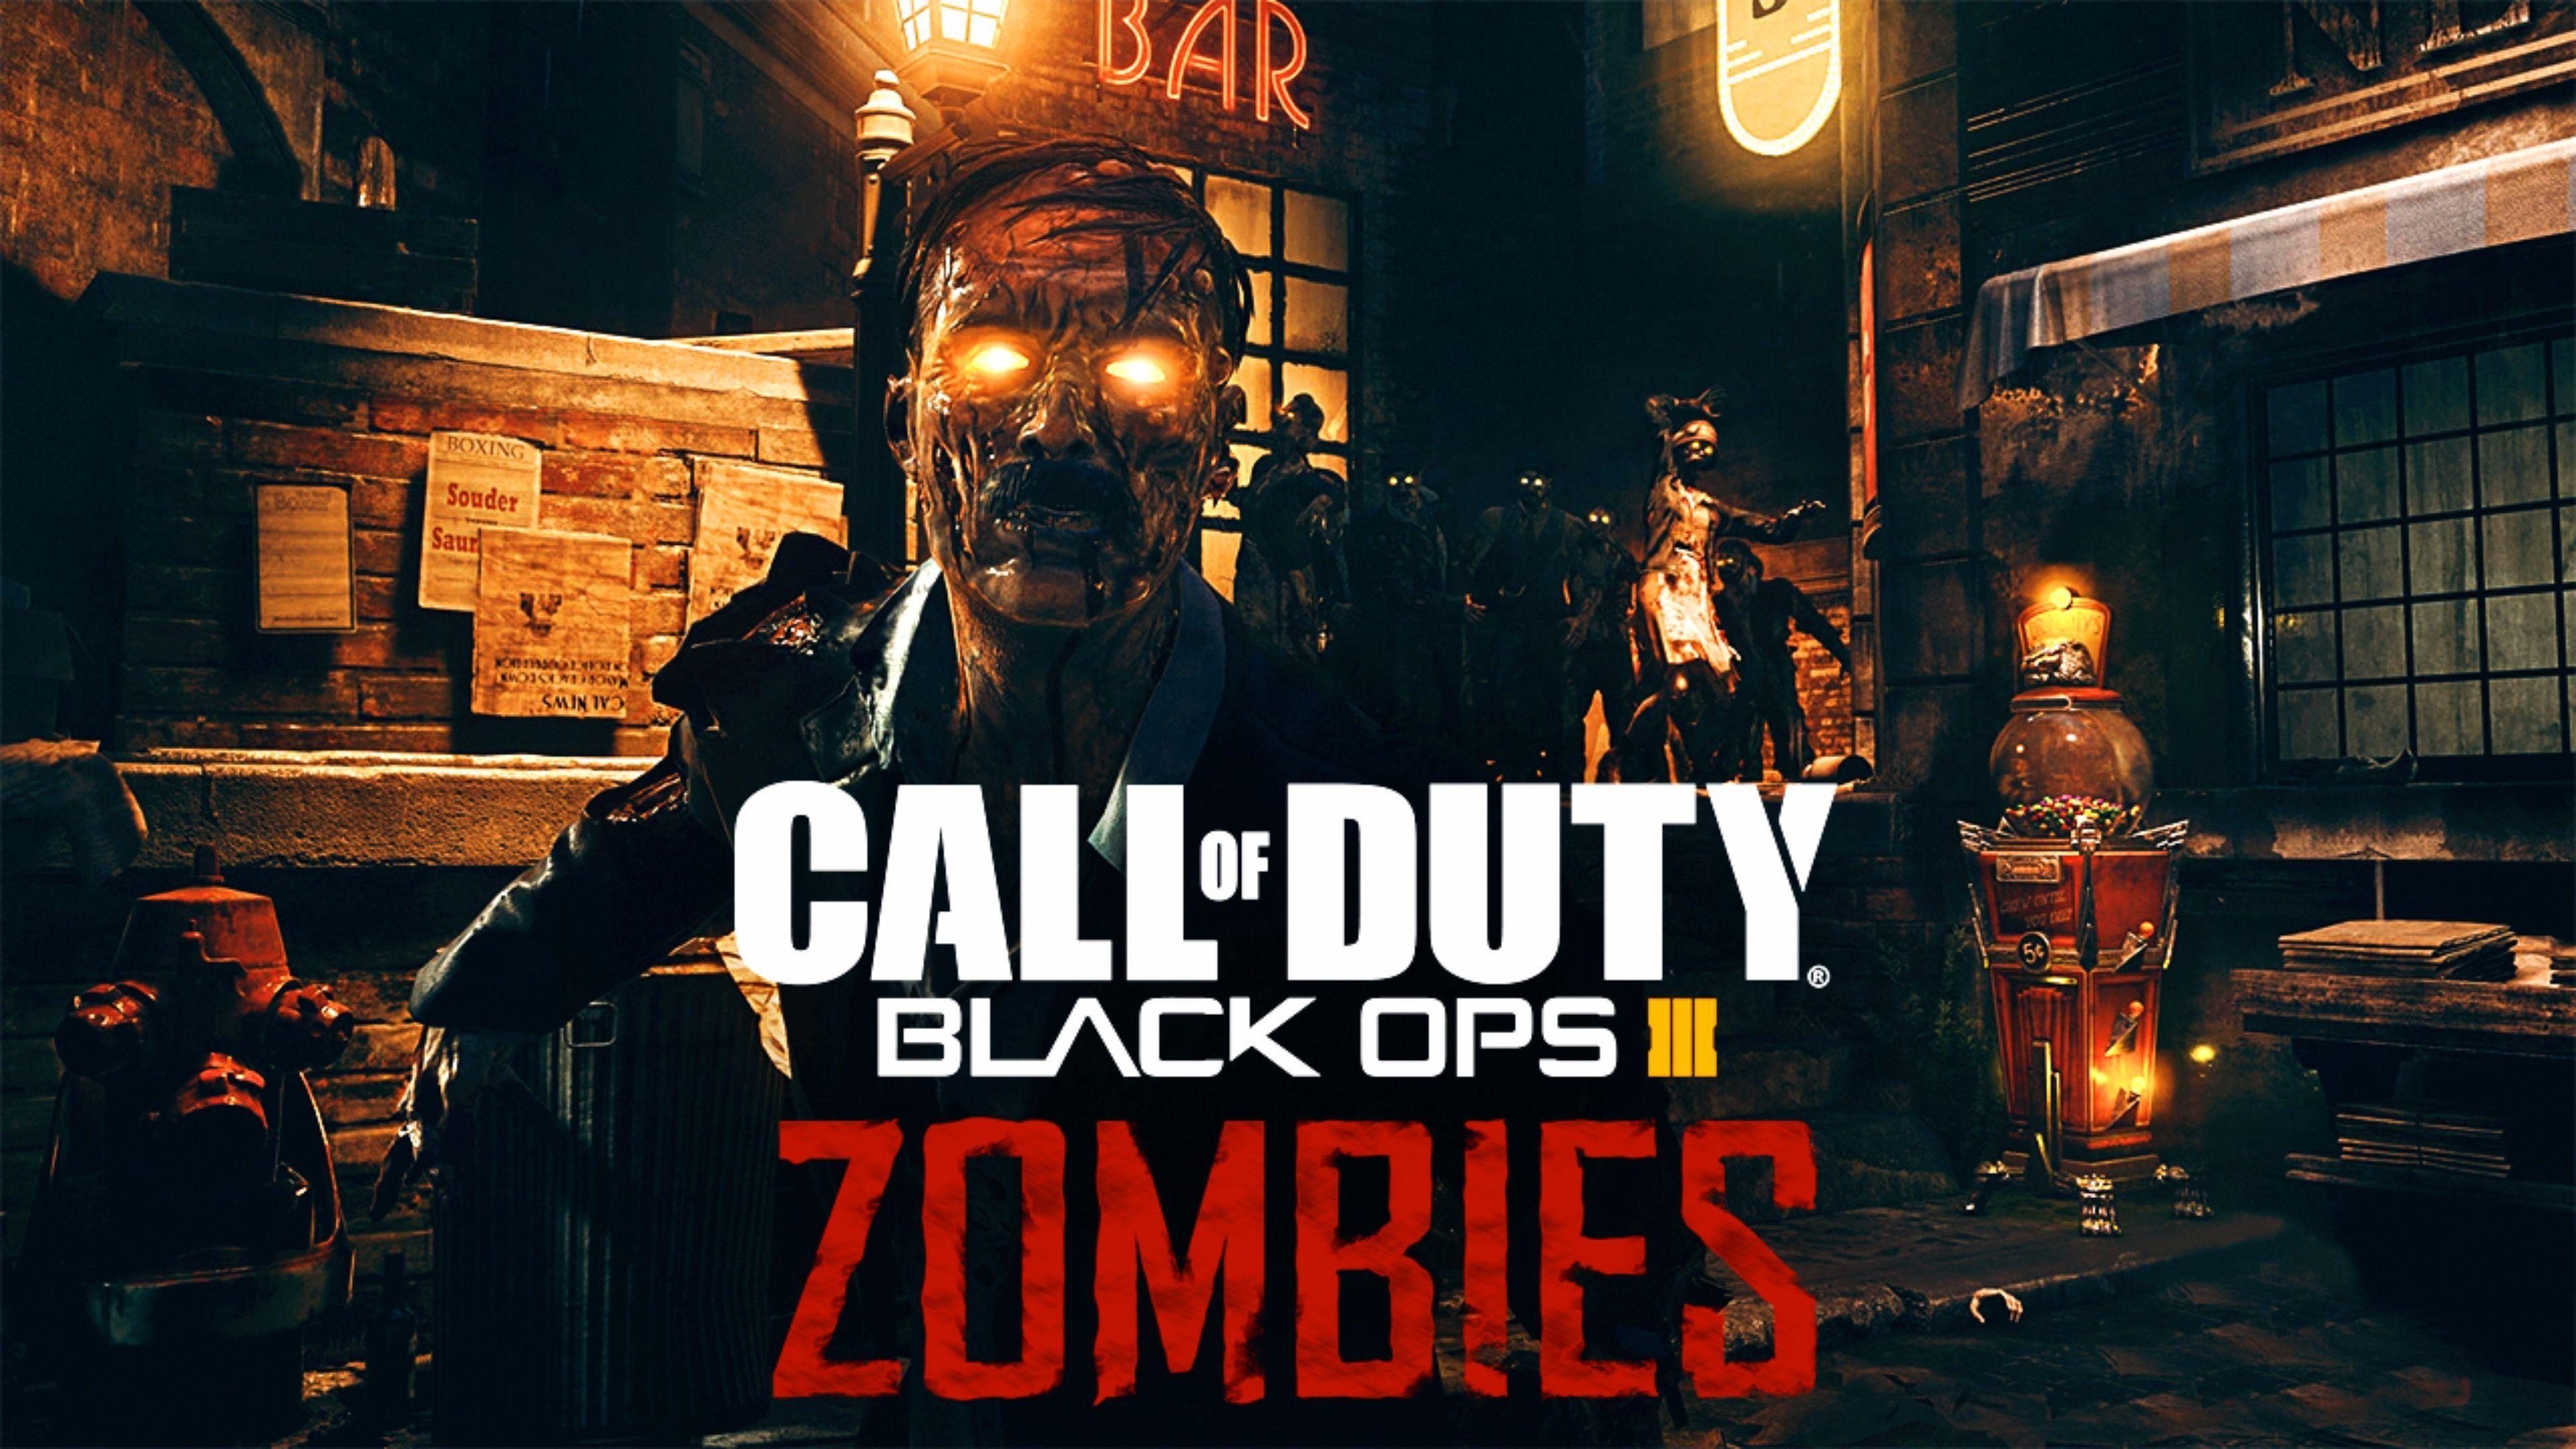 Call Of Duty Black Ops 3 Wallpaper Zombies - clipartsgram.com